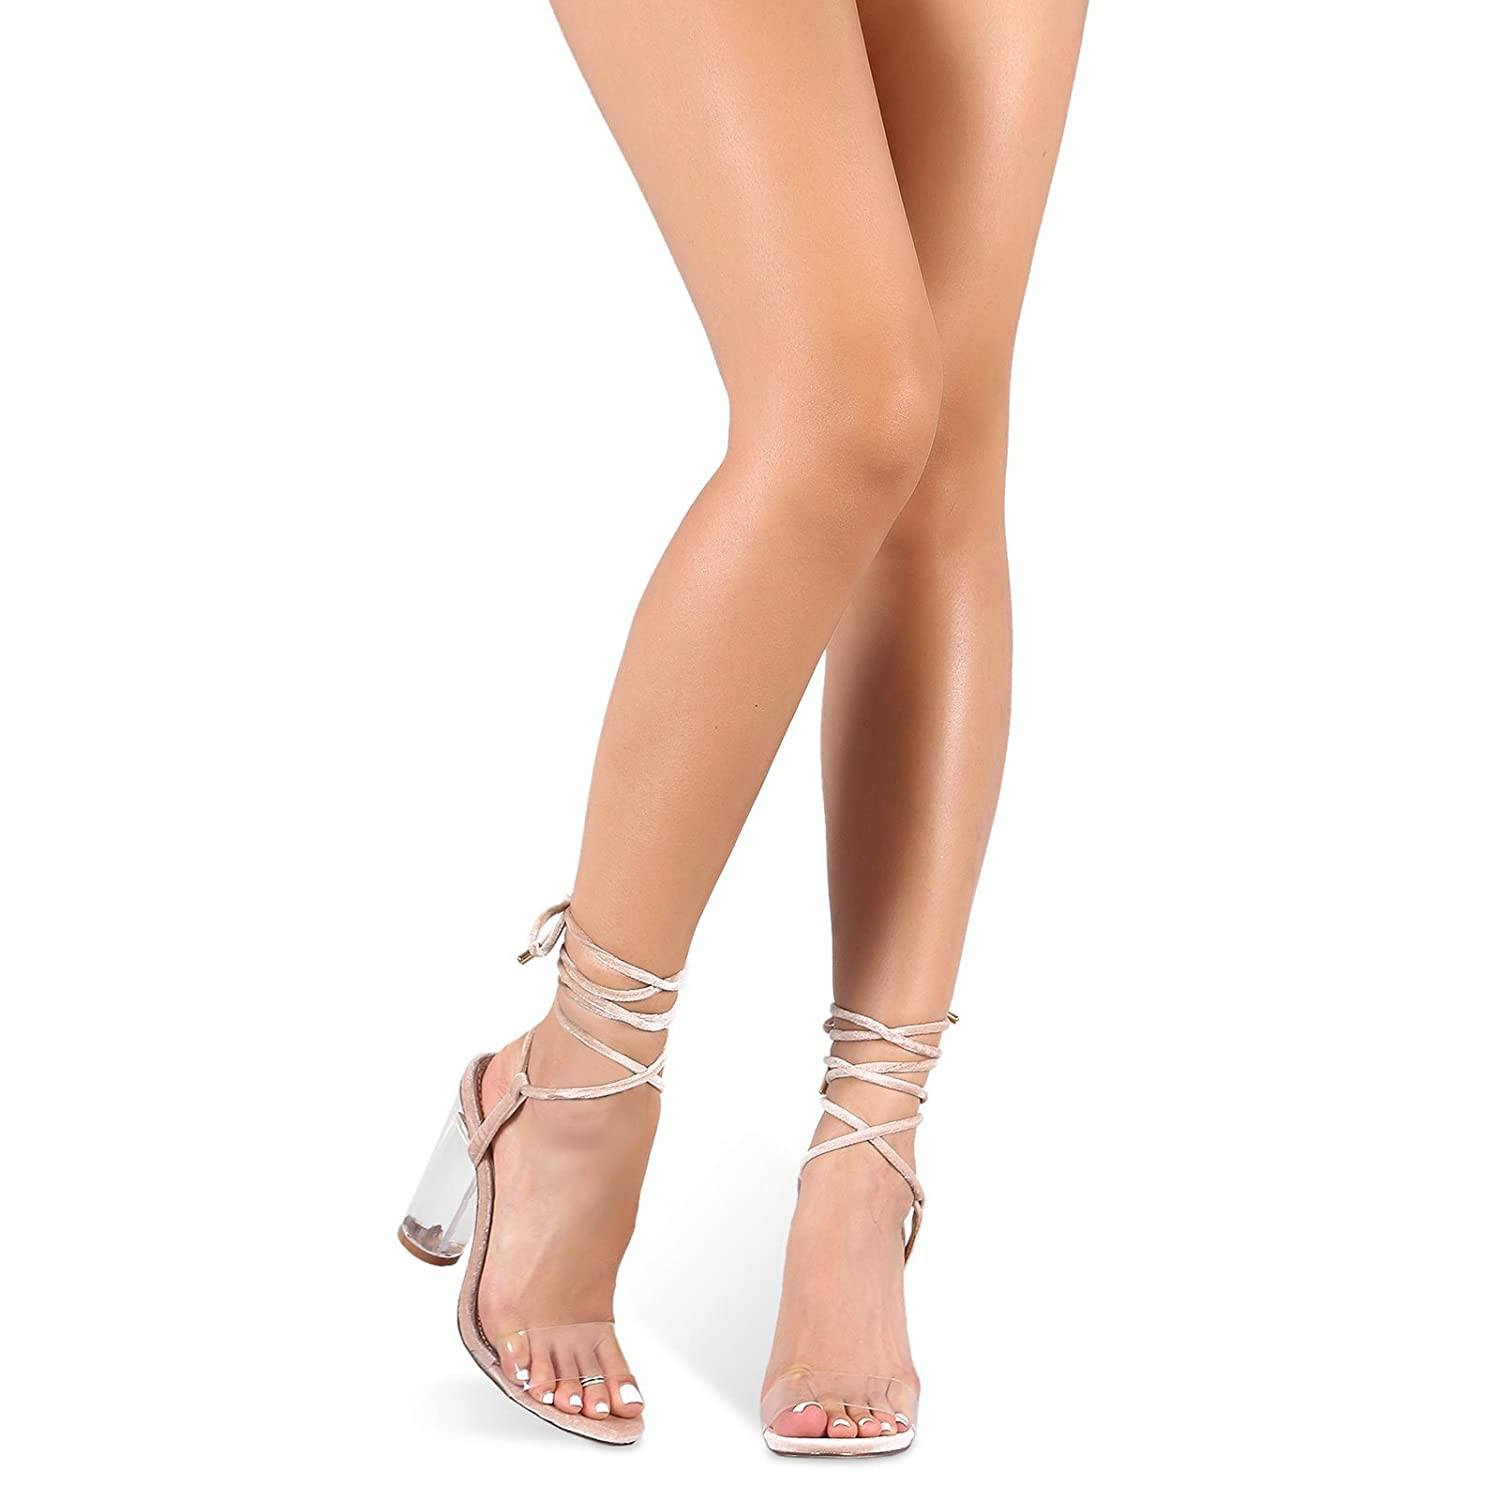 b826e52f7a2 Cape robbin strappy lace up perspex lucite clear transparent open peep toe  heels nude beige heeled